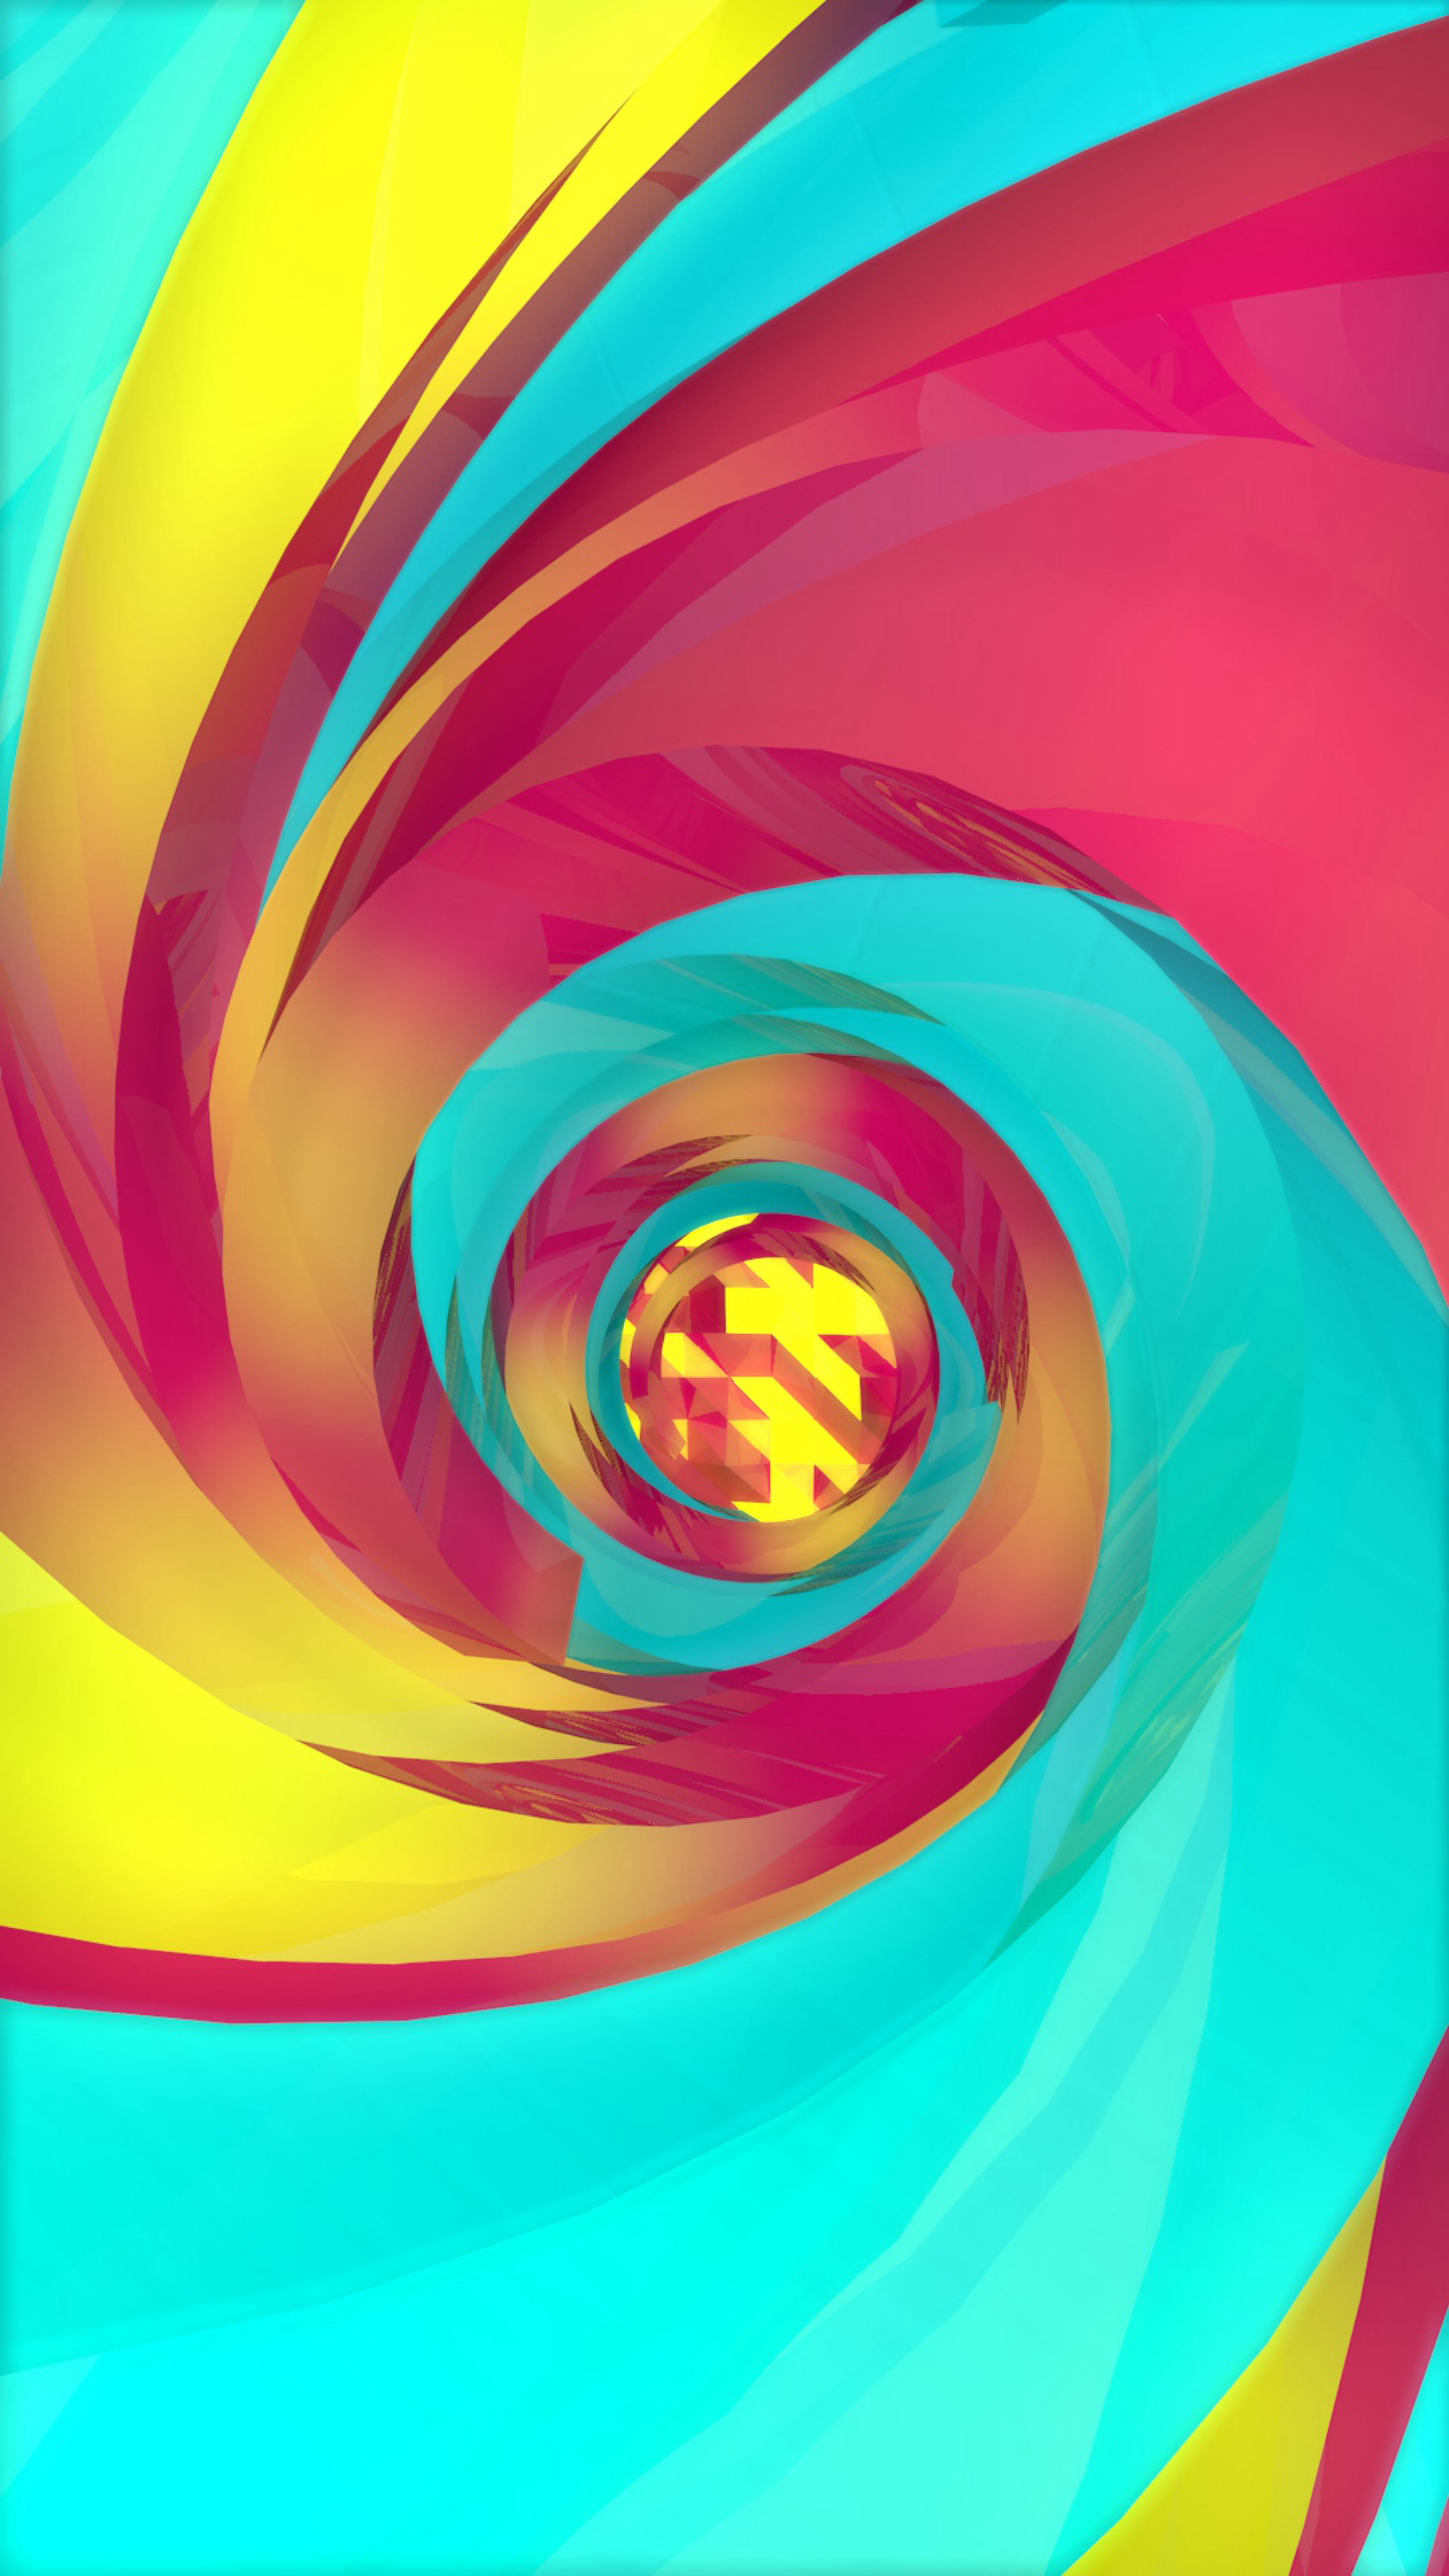 97884 Screensavers and Wallpapers Swirling for phone. Download Abstract, Multicolored, Motley, Texture, Textures, Funnel, Spiral, Swirling, Involute pictures for free